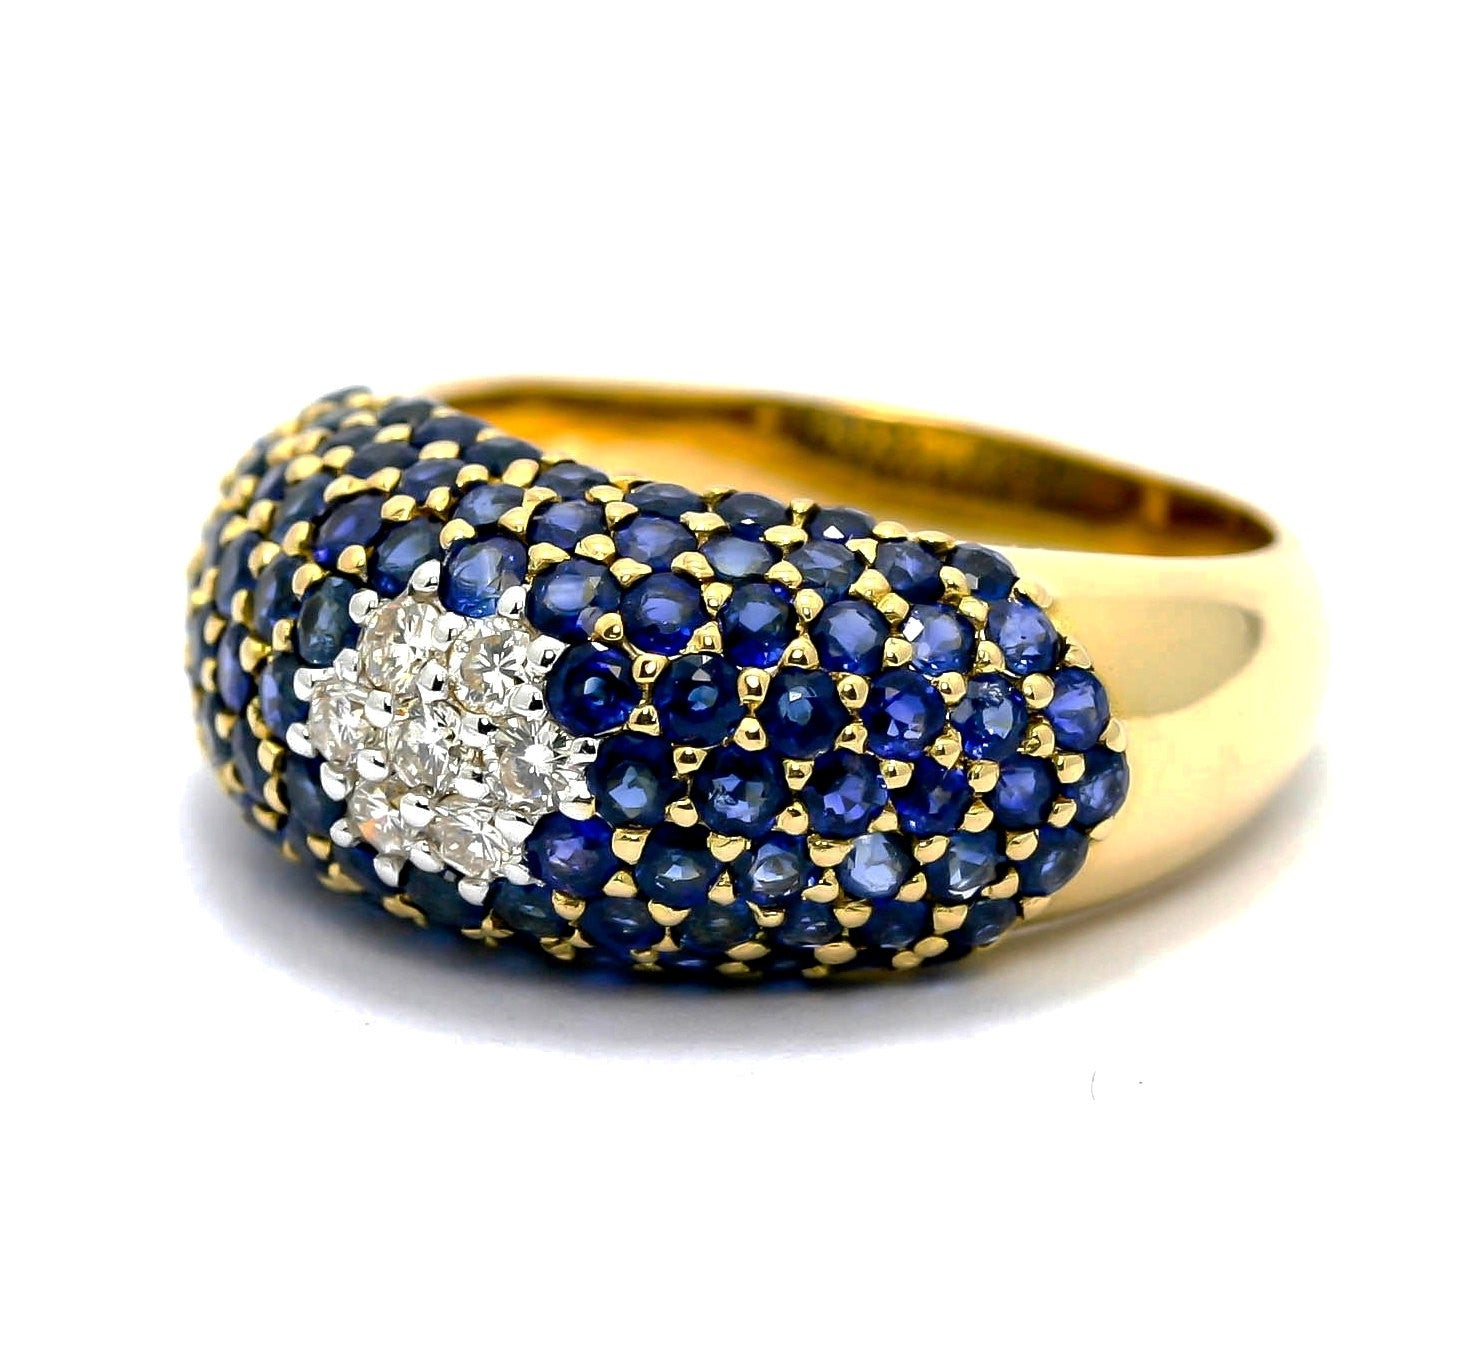 Blue Sapphire Gemstone & Diamond Engagement Ring, Anniversary Ring, Flower Ring, Pavé Dome, Bombé Ring, Cocktail Ring